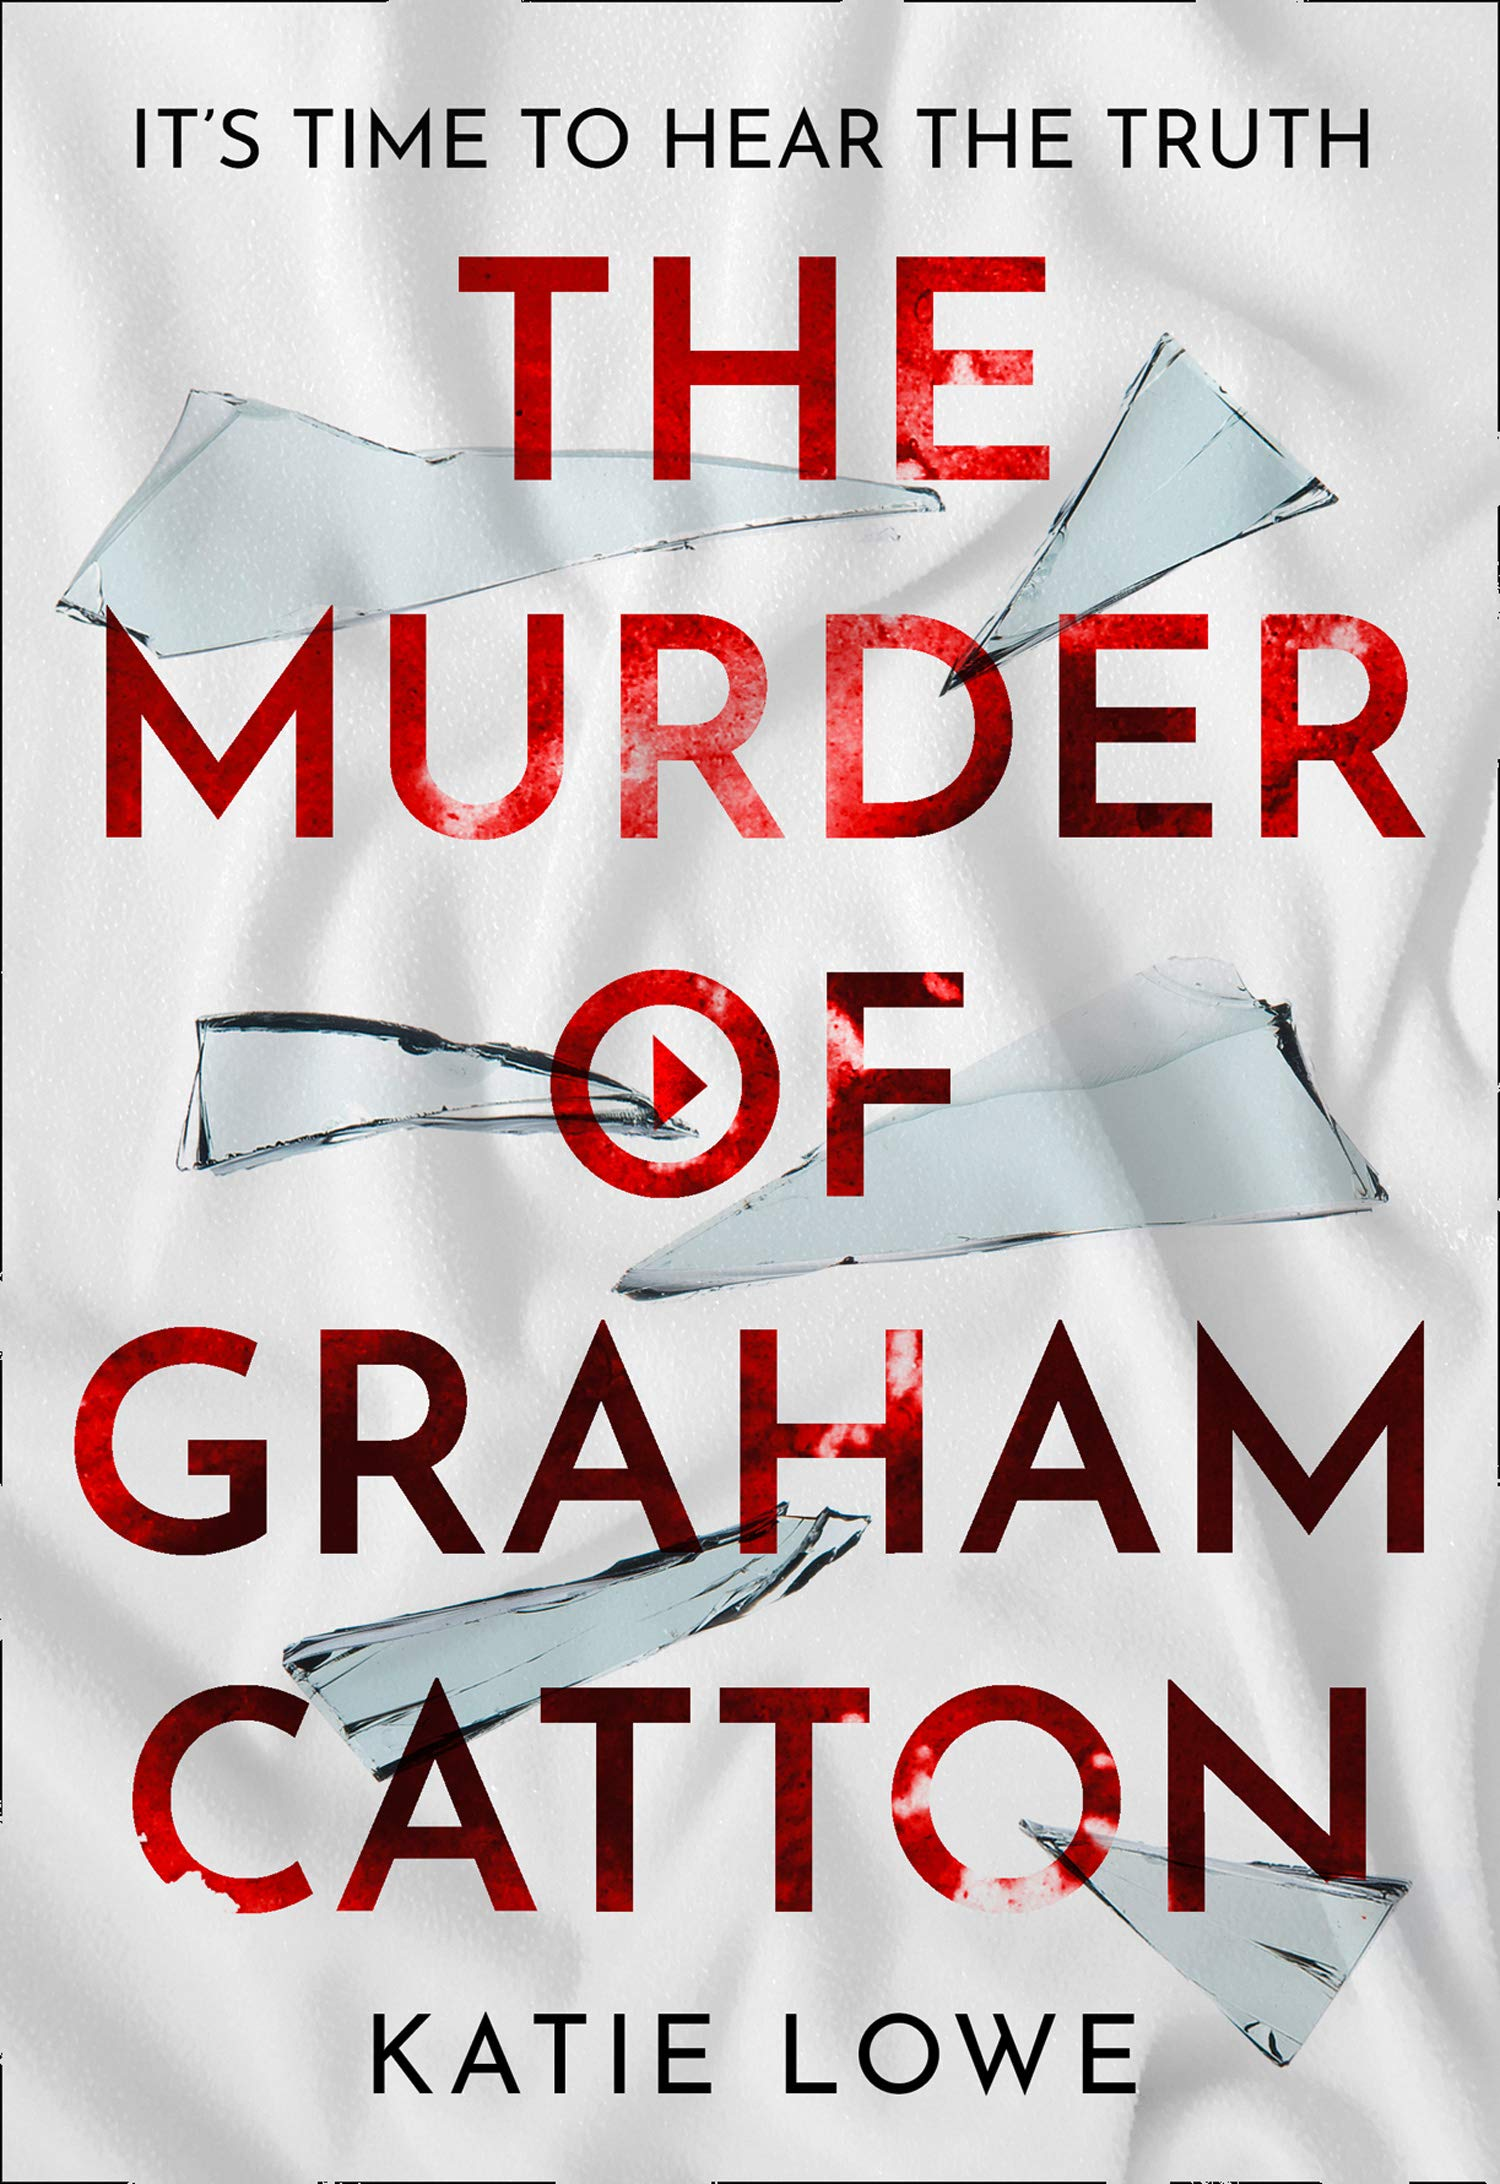 The Murder of Graham Catton: A Book Review